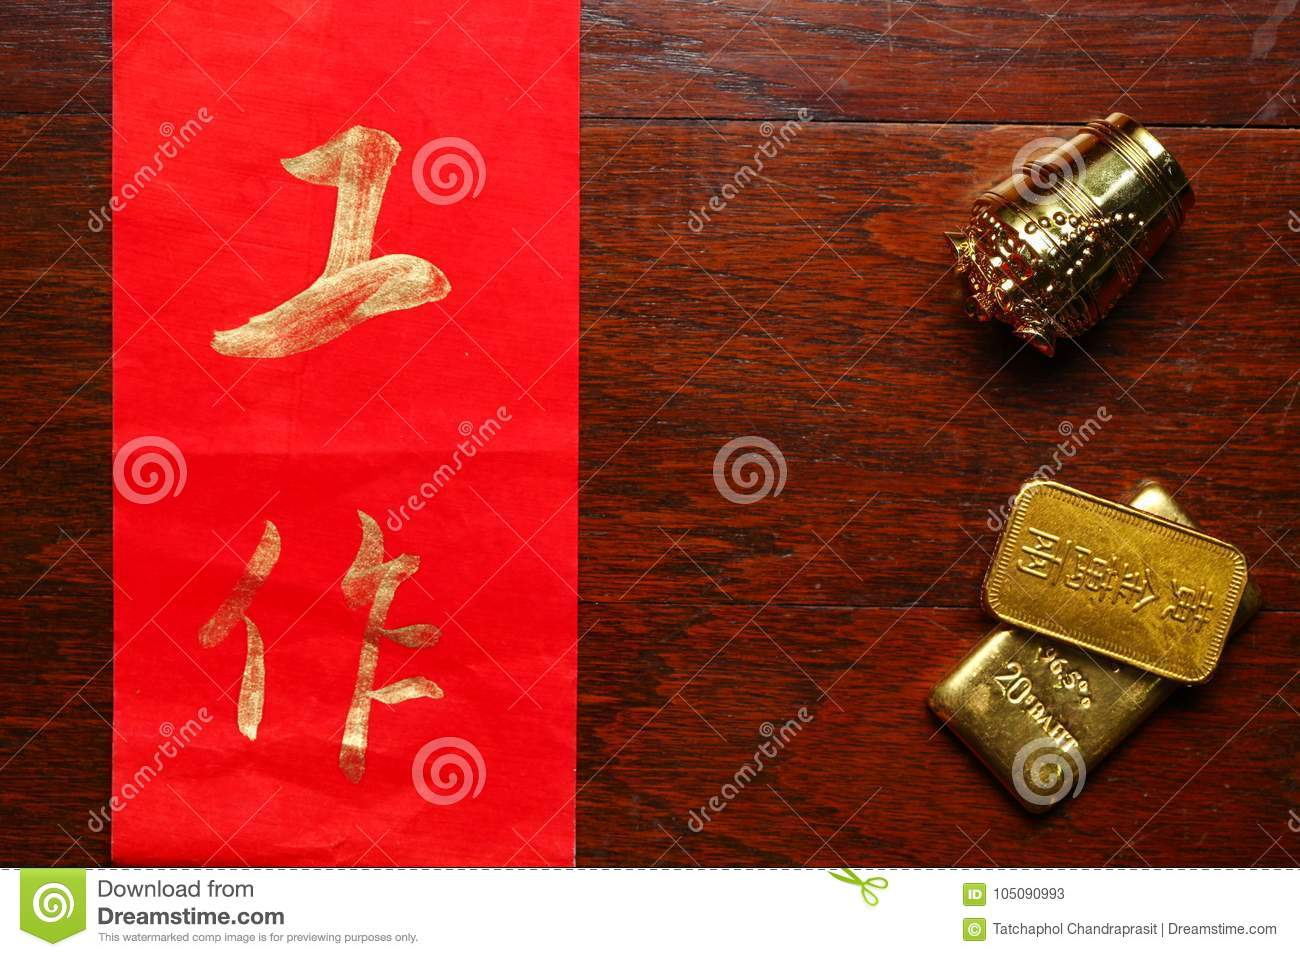 Paper Wrote Chinese Text Meaning Of Good Wish Beside Gold